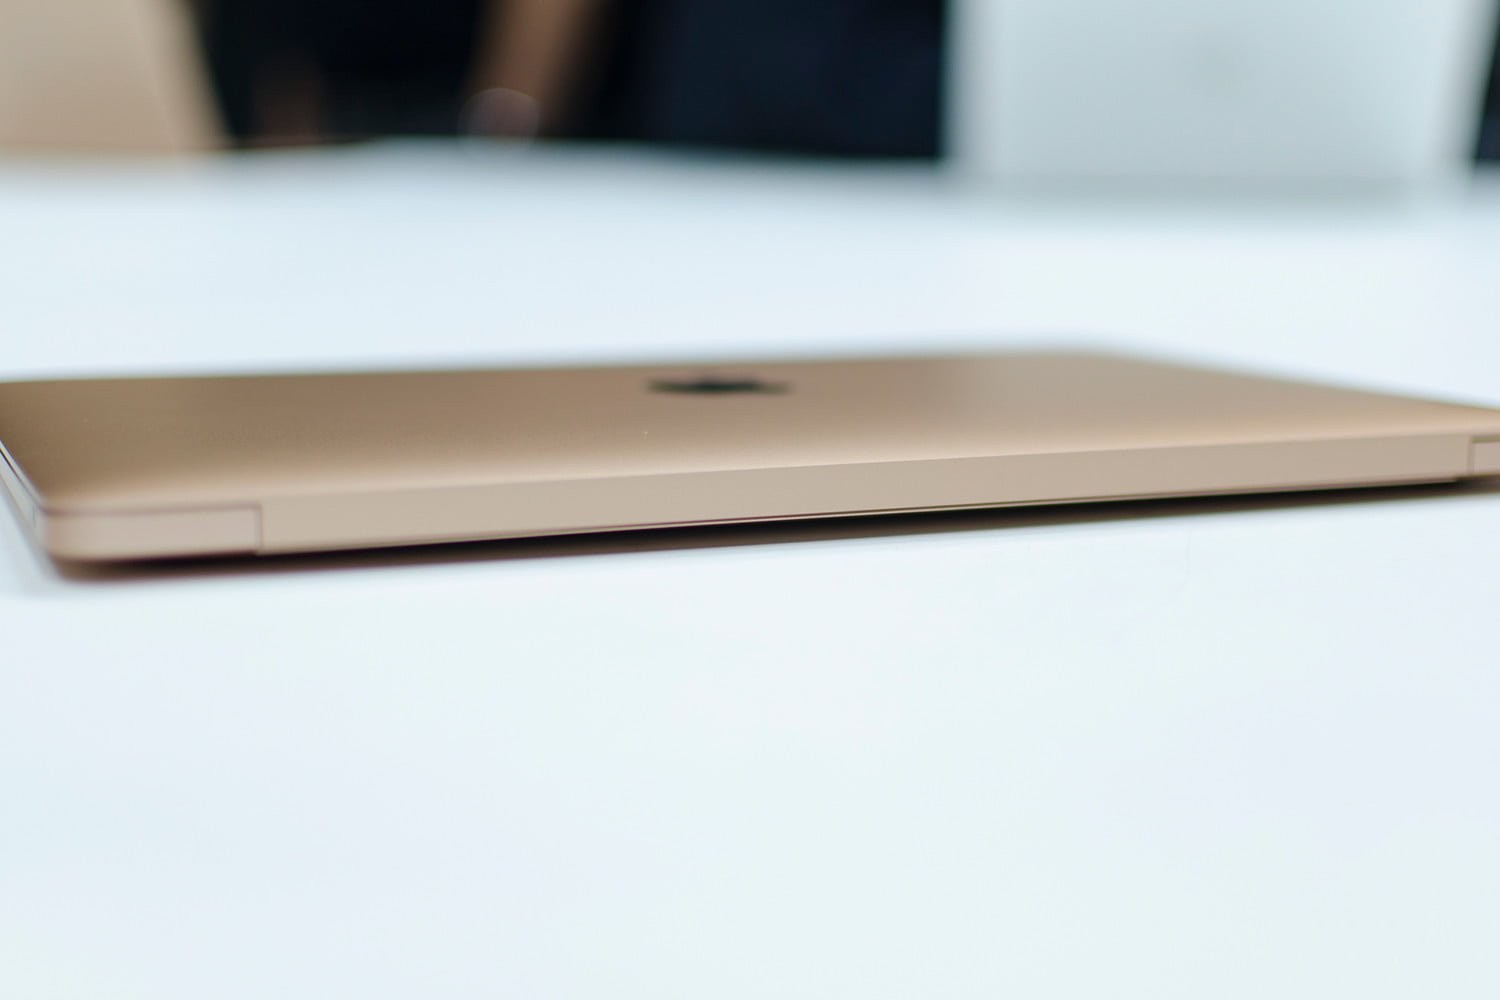 yeni-macbook-air-hakkinda-her-sey-5